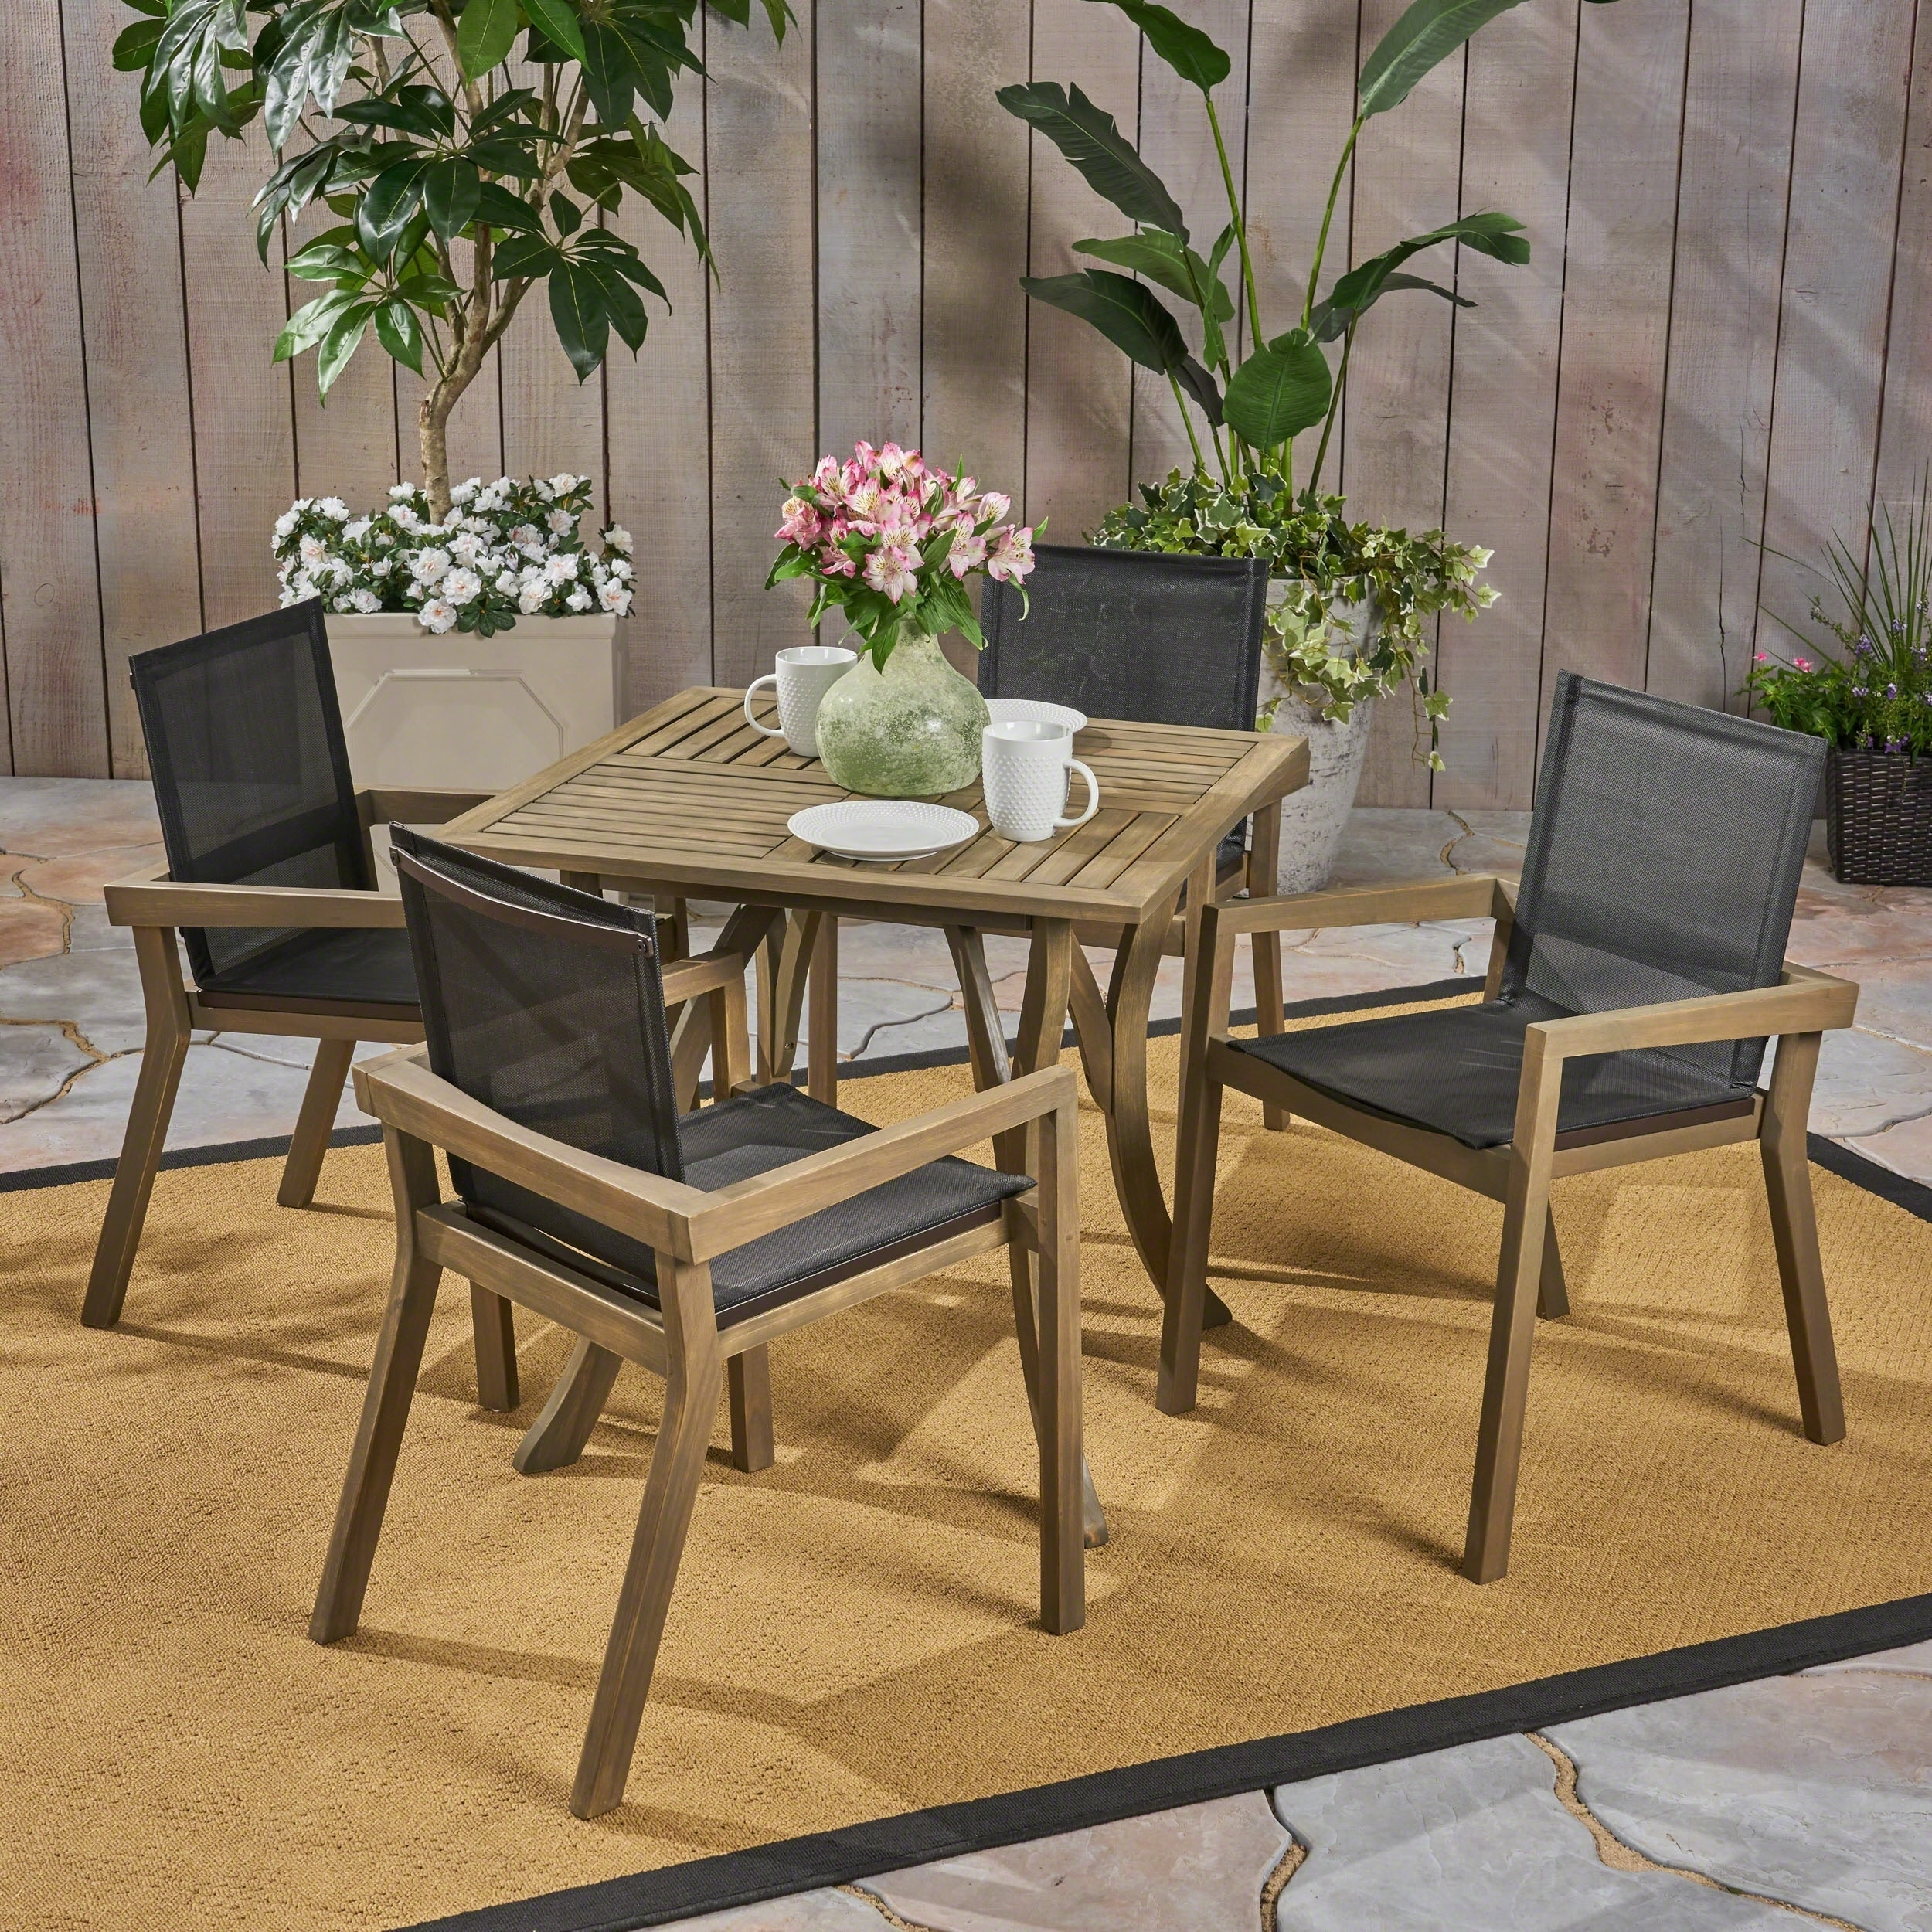 Chaucer Outdoor 4 Seater Square Acacia Wood Mesh Seats Dining Set By